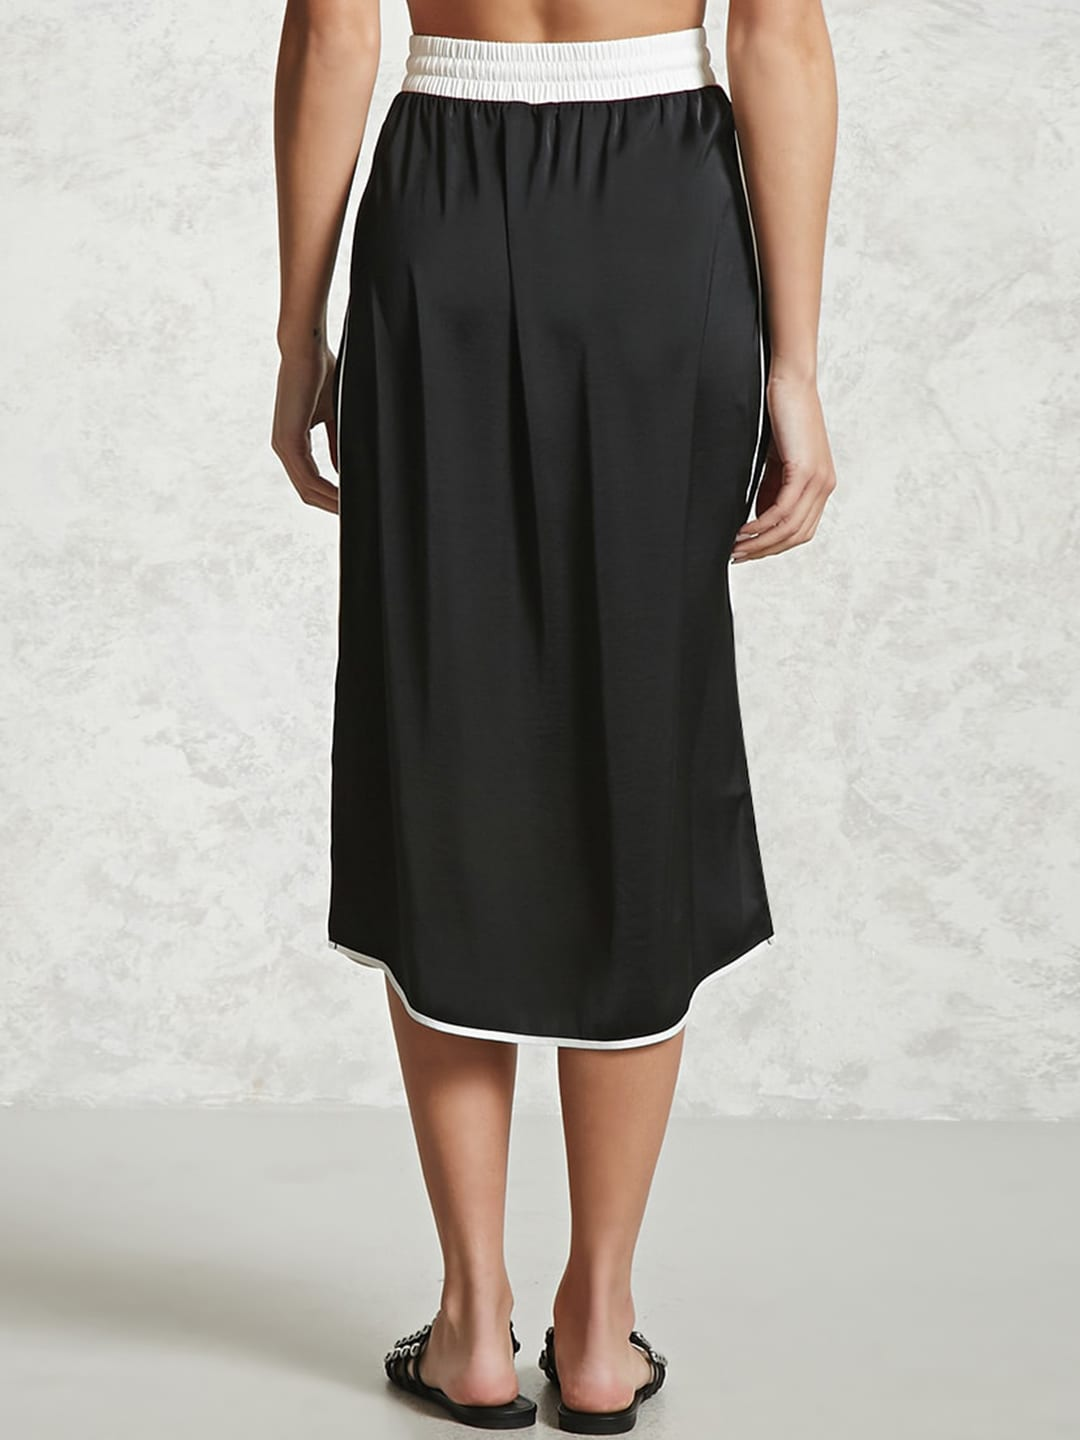 Watch - Pencil black skirt forever 21 video